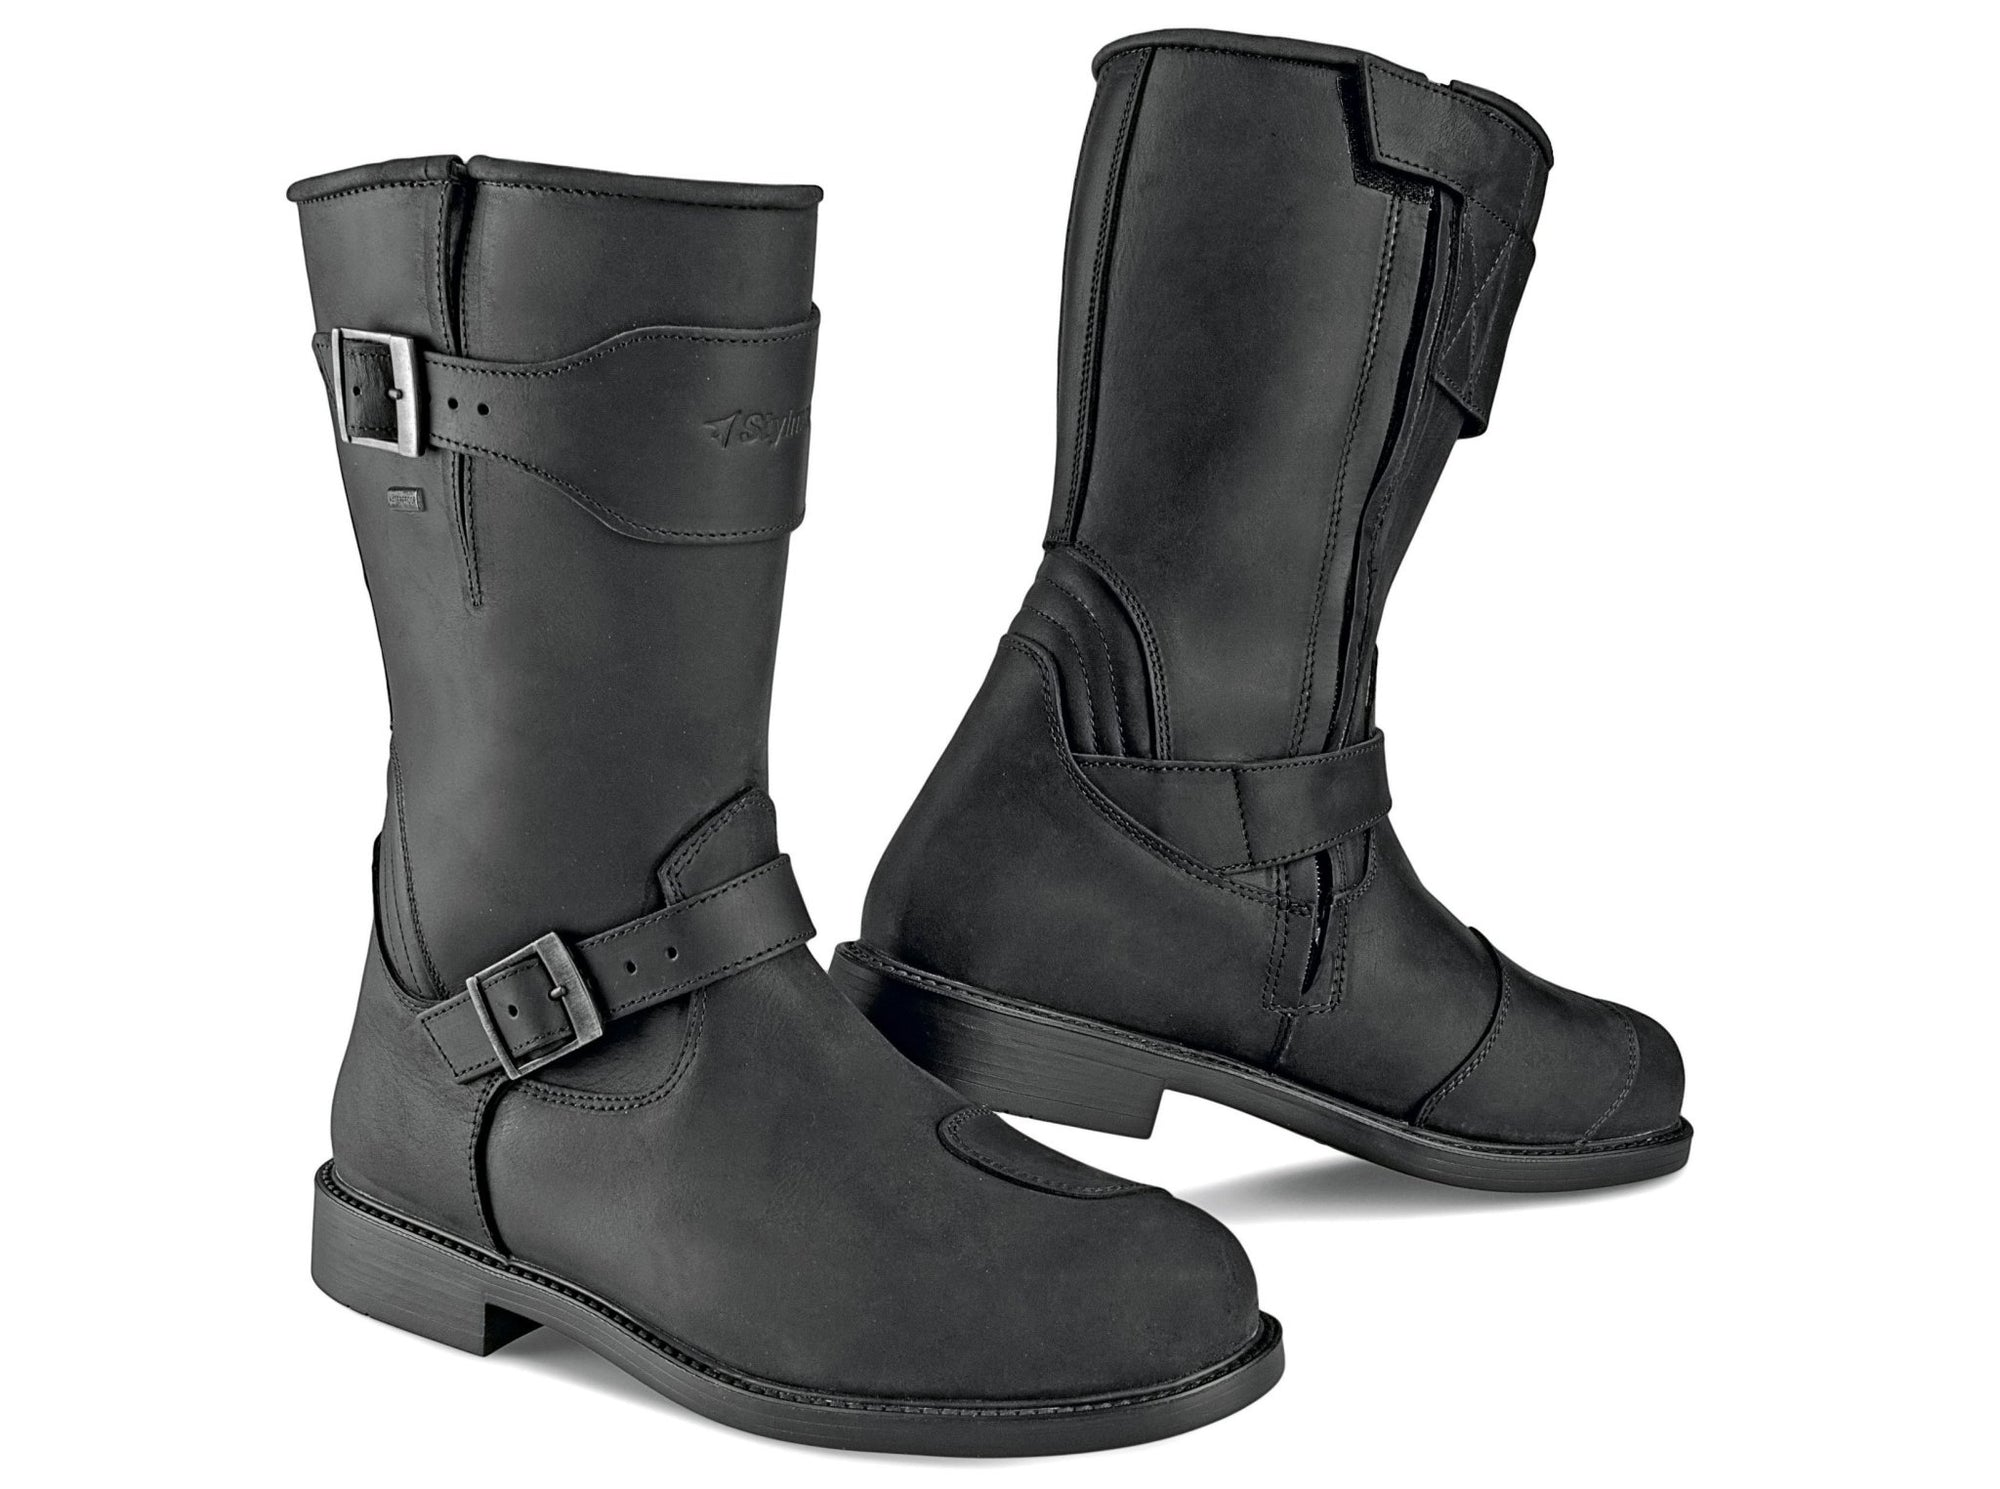 Stylmartin - Stylmartin Legend WP Touring in Black - Boots - Salt Flats Clothing